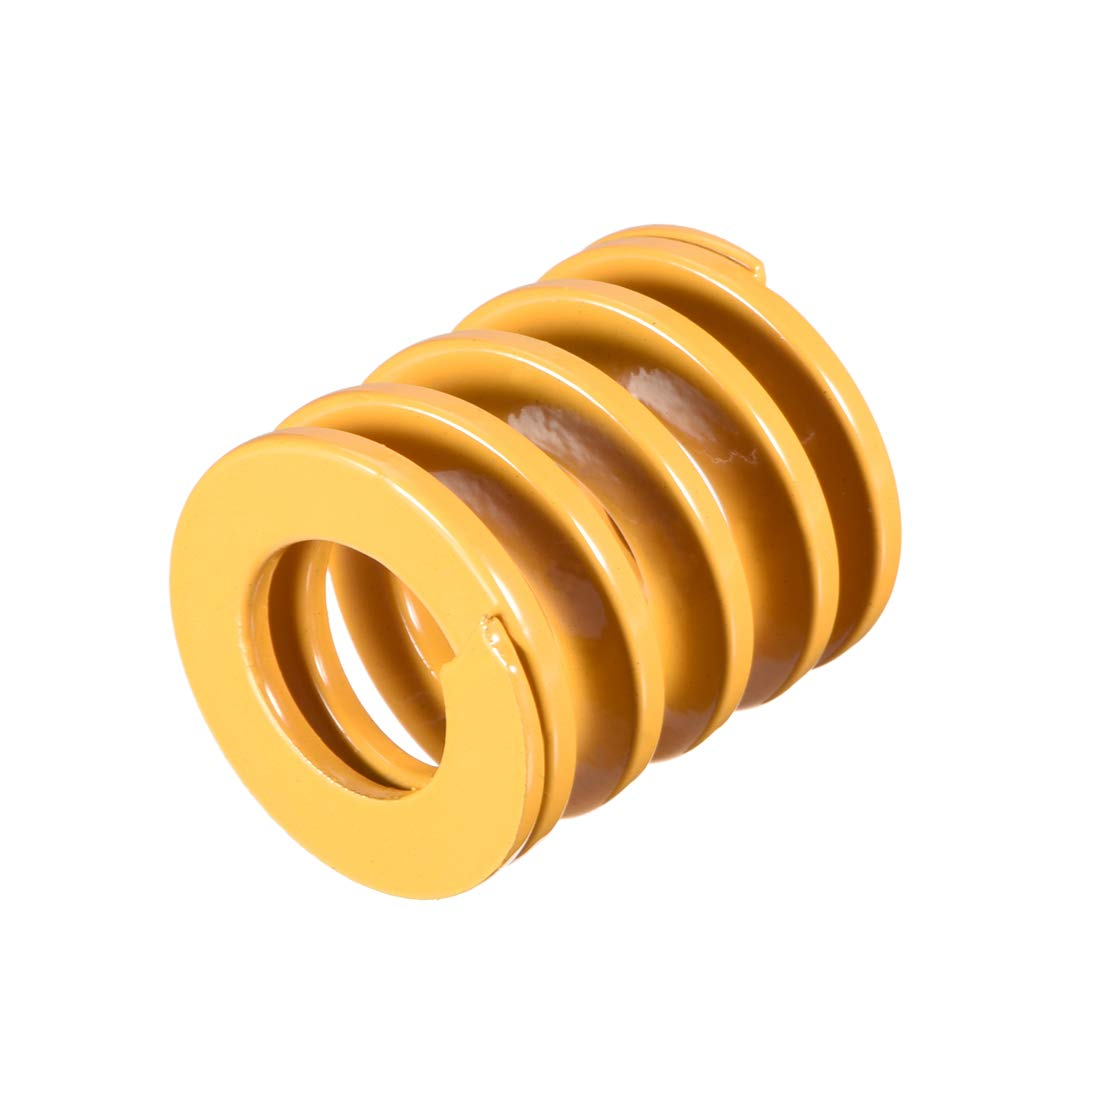 sourcing map 10mm OD 35mm Long Spiral Stamping Extra Heavy Load Compression Mould Die Spring Brown 2Pcs